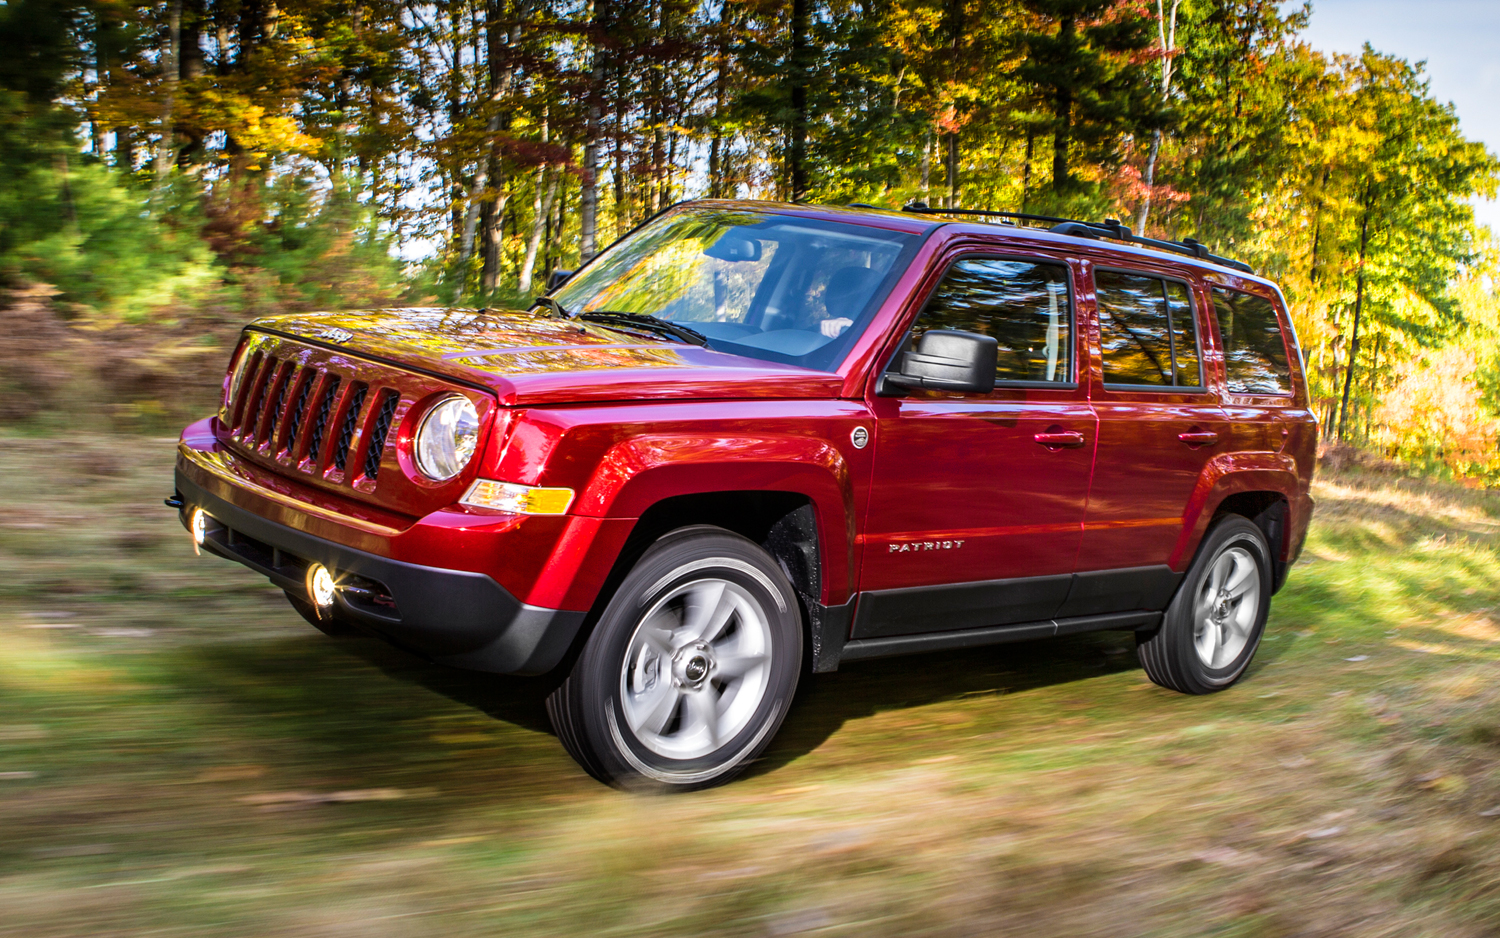 2014 Jeep Patriot #5